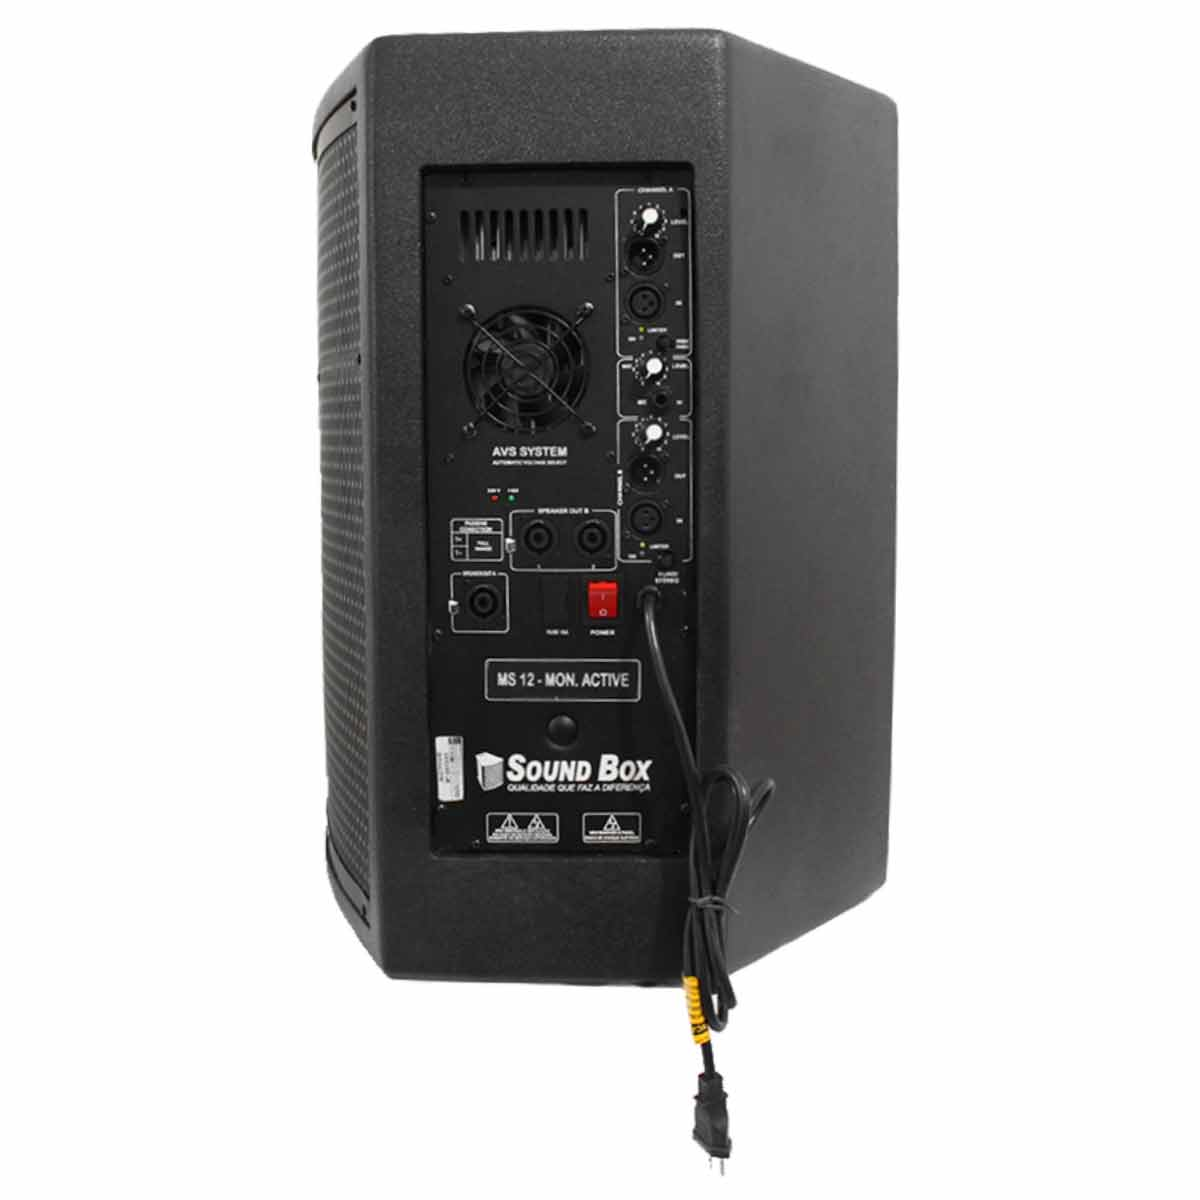 Monitor Ativo 500W MS 12 Preto - SoundBox